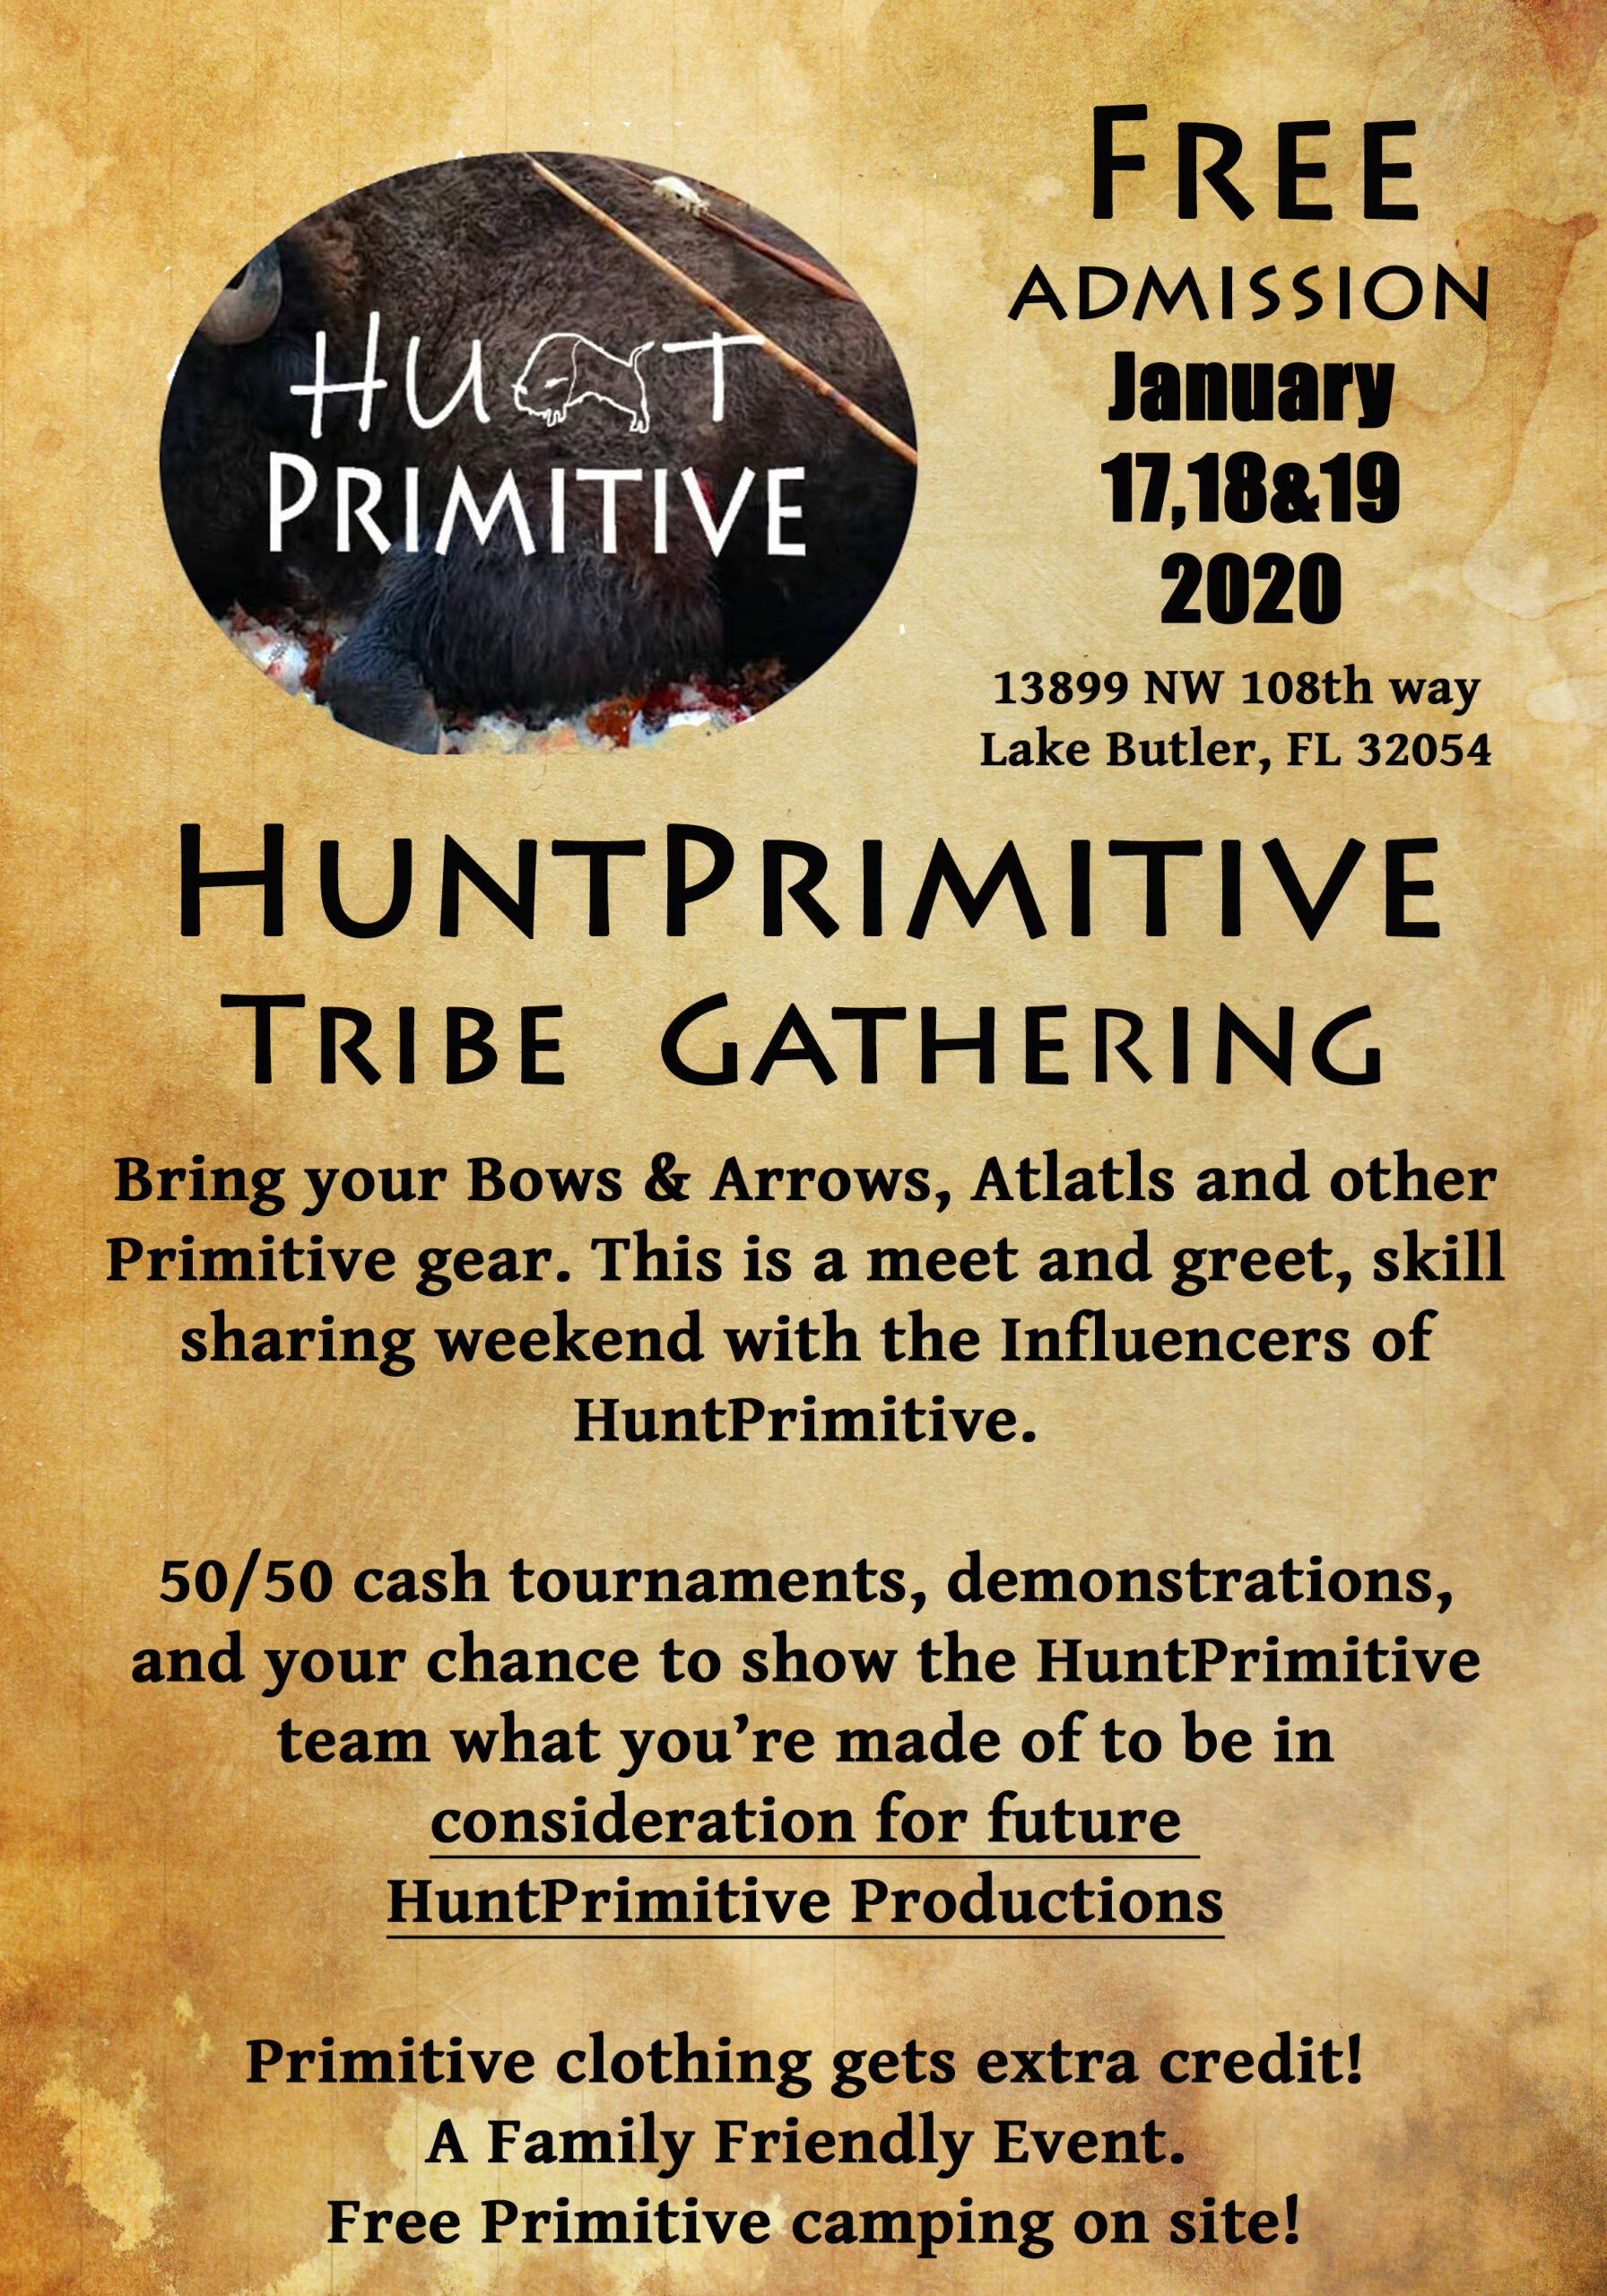 HuntPrimitive-Gathering